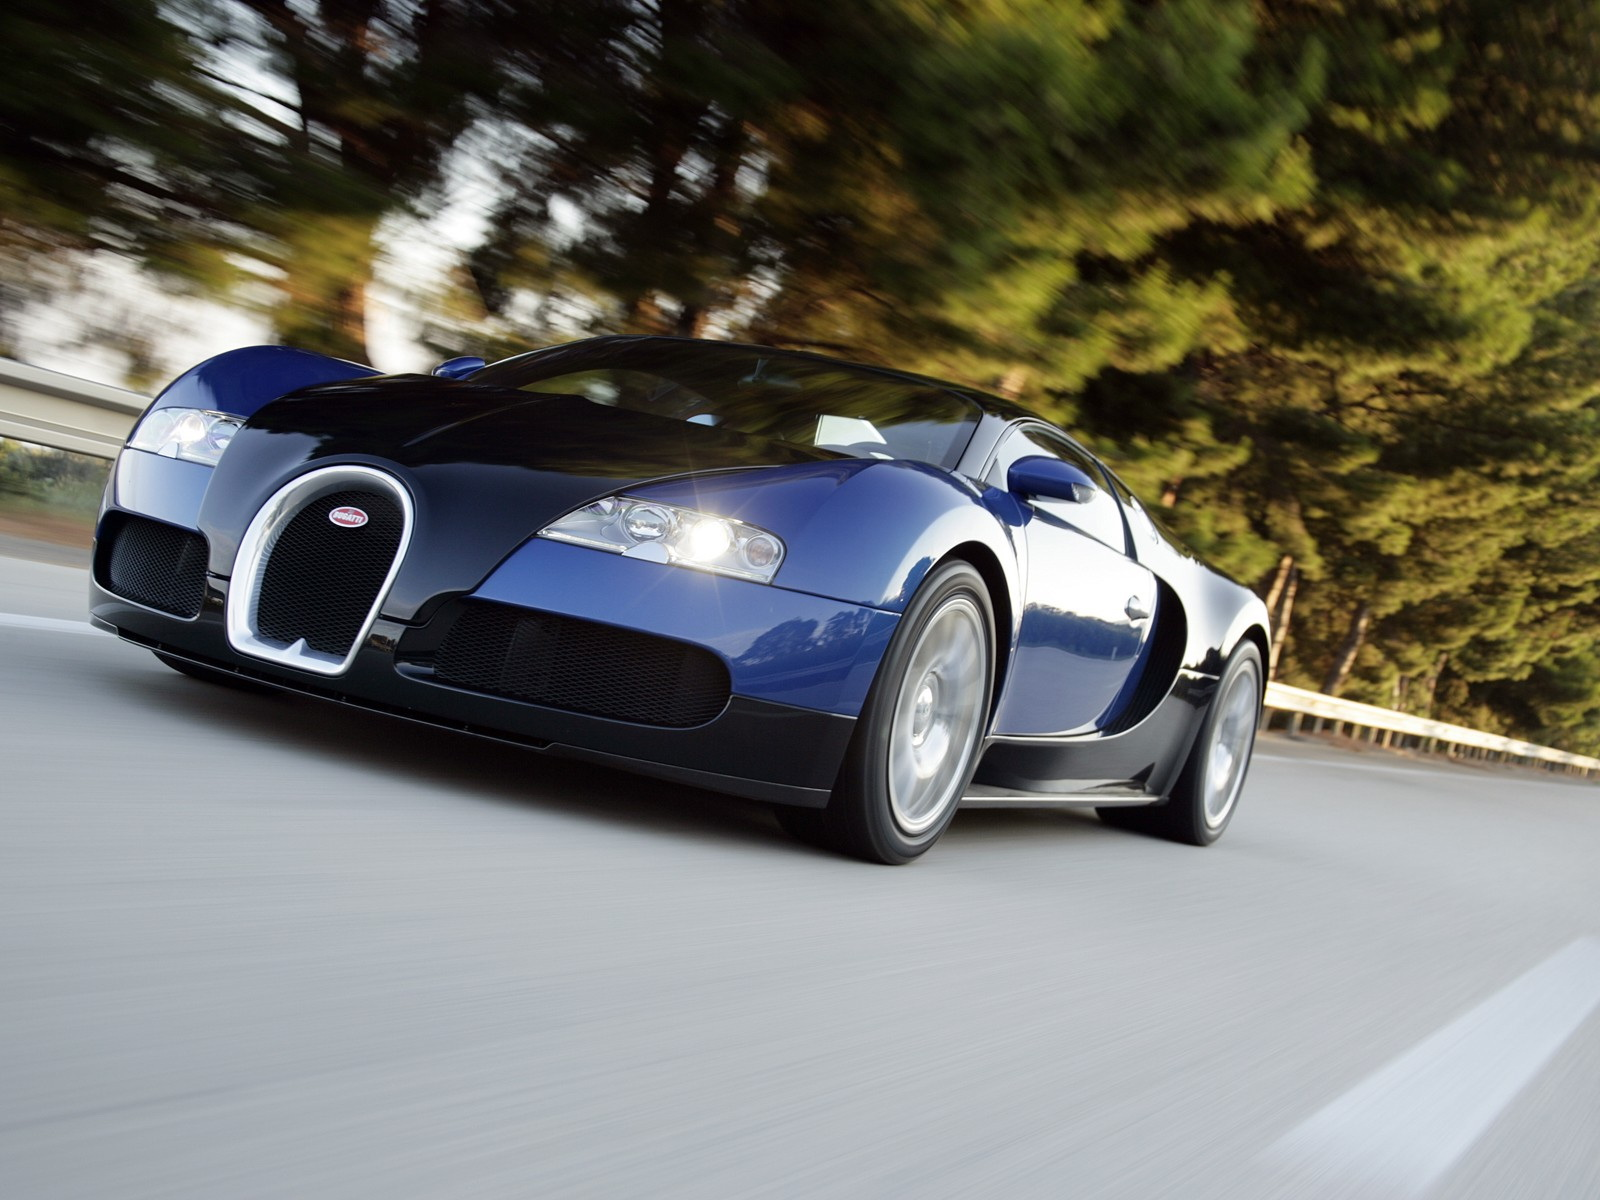 Bugatti Veyron Blue In Motion Grand Sport Sang Wallpaper Download